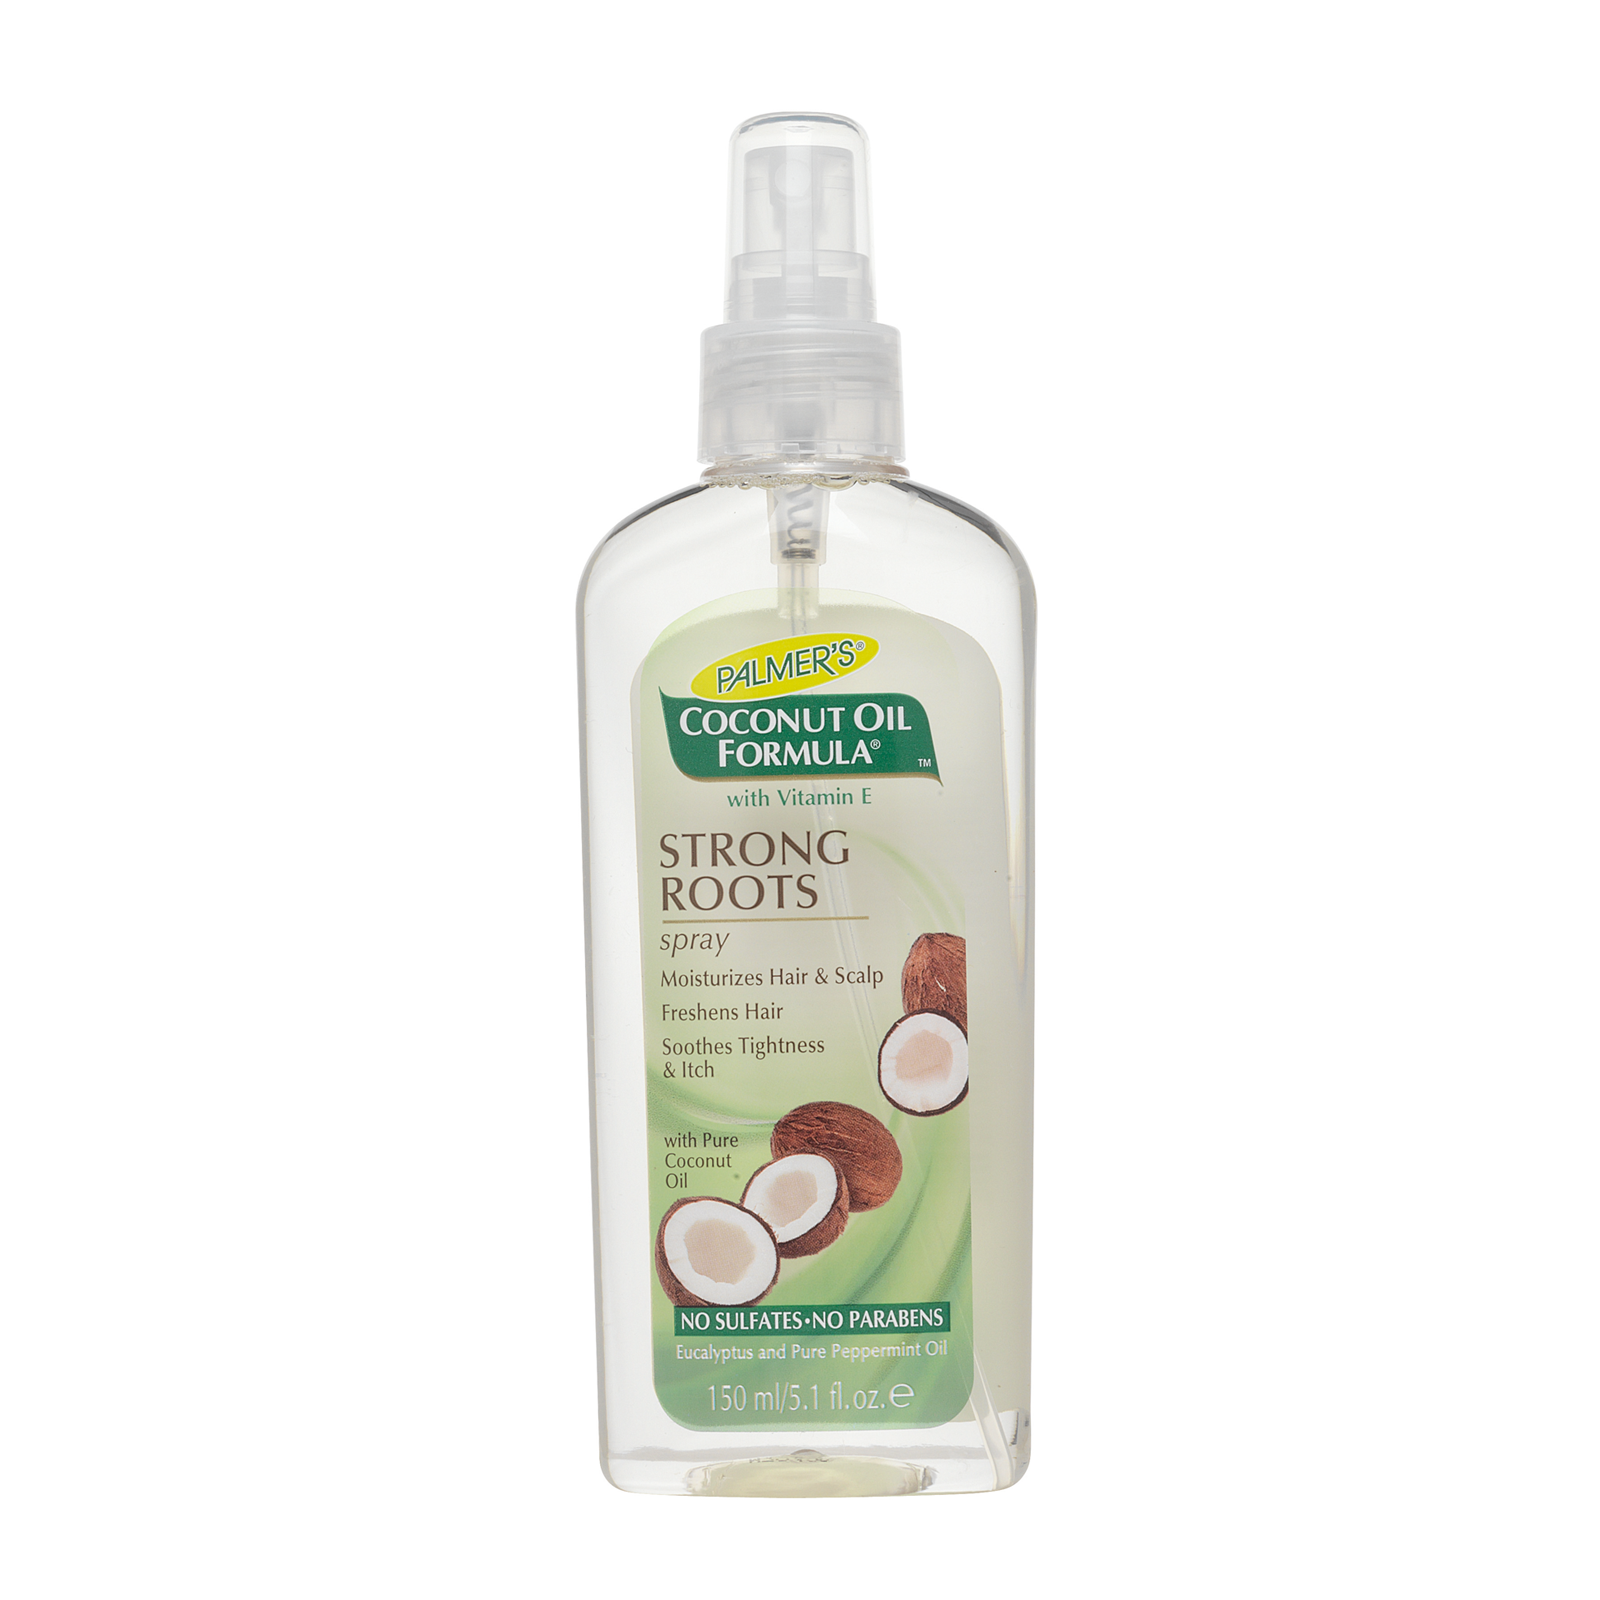 Palmer S Coconut Oil Formula Strong Roots Spray 150ml